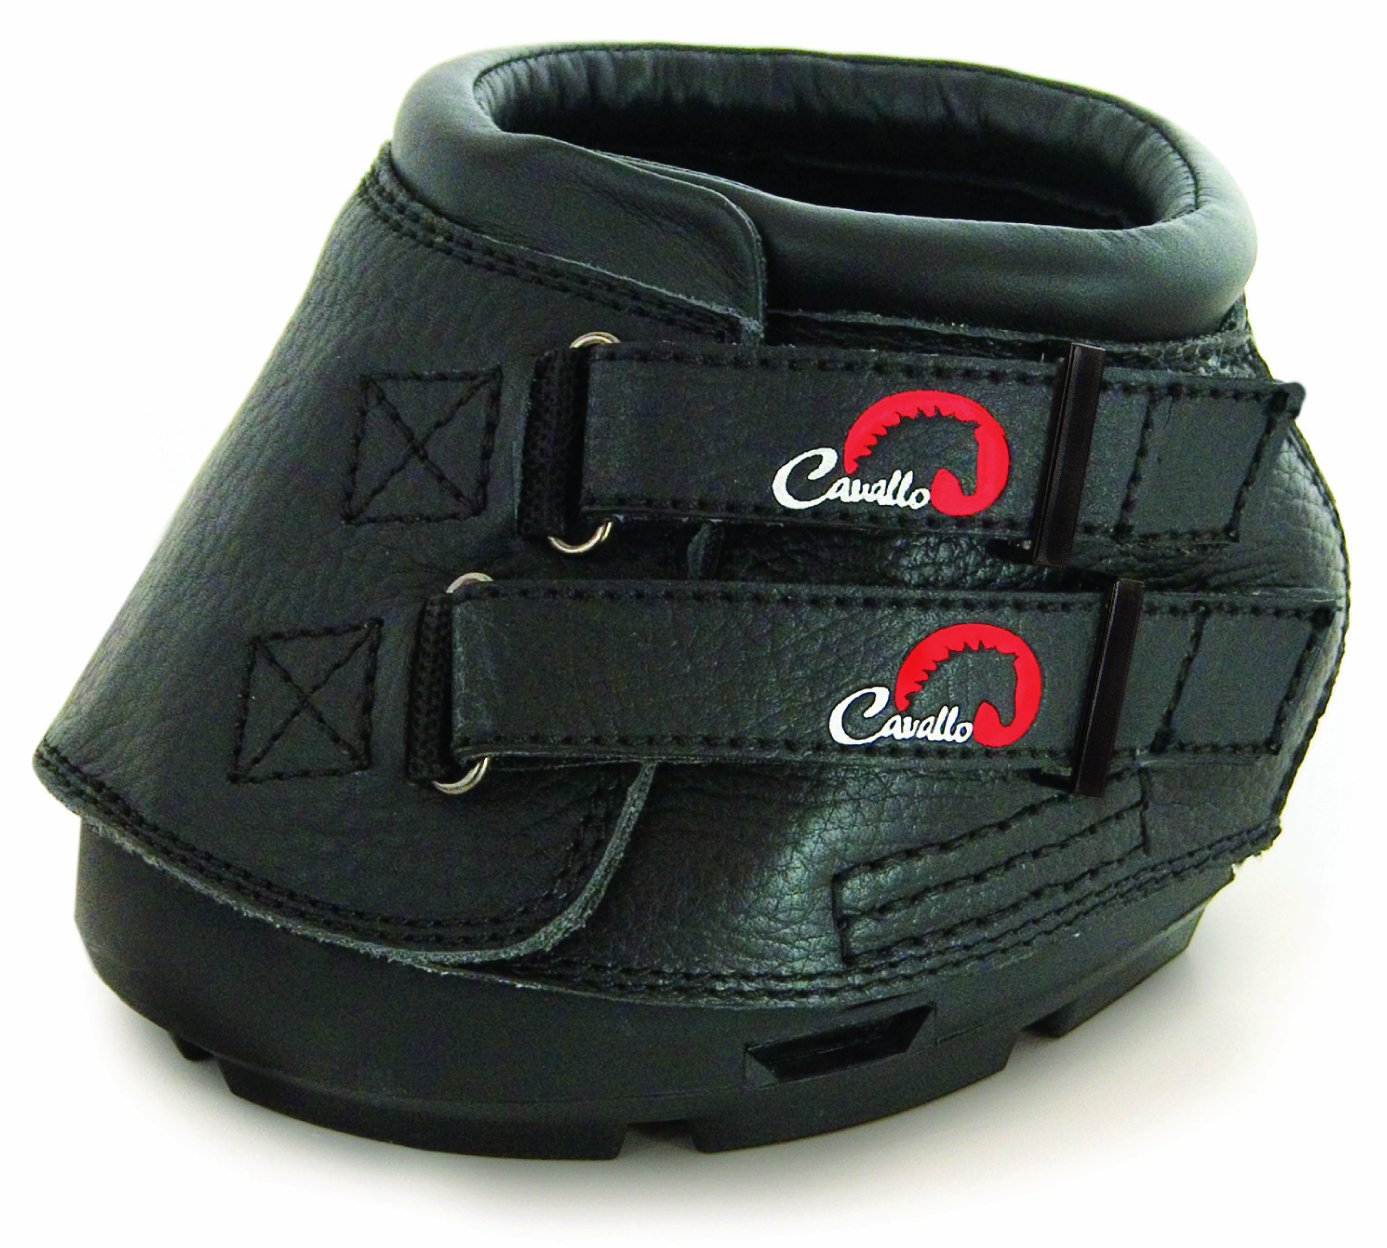 Cavallo Simple Hoof Boot for Horses, Size 3, Black by Cavallo